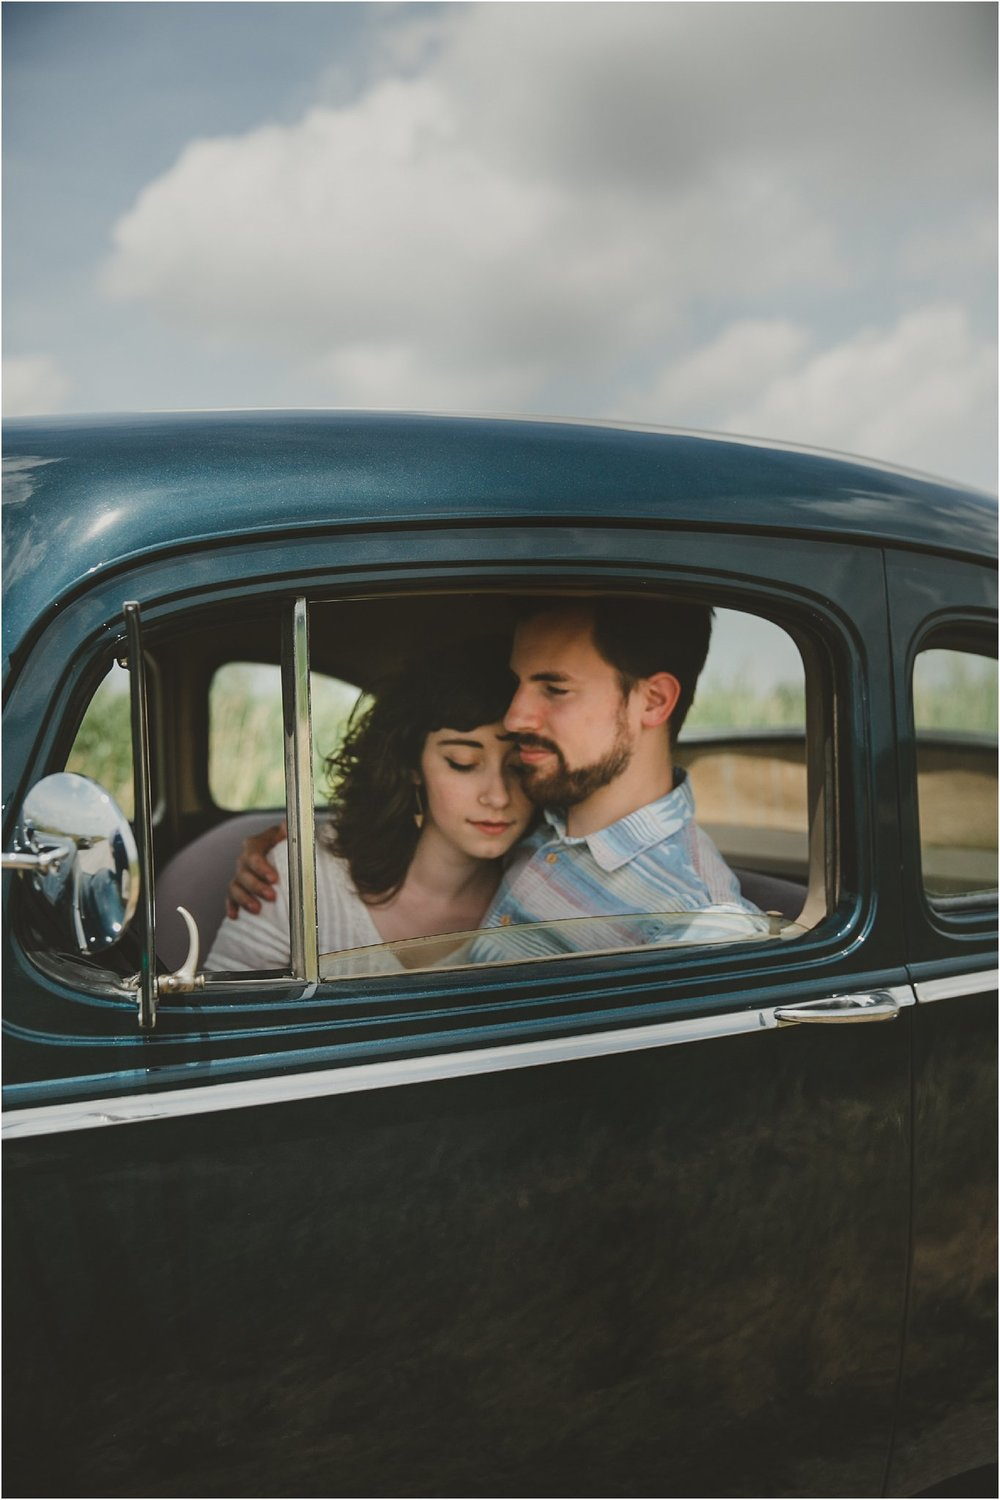 PattengalePhotography_Indiana_Backyard_Wedding_Reception_Boho_VintageCar_Hudson_classic_elegant_smalltown_intimate_Stephen&Me_0020.jpg